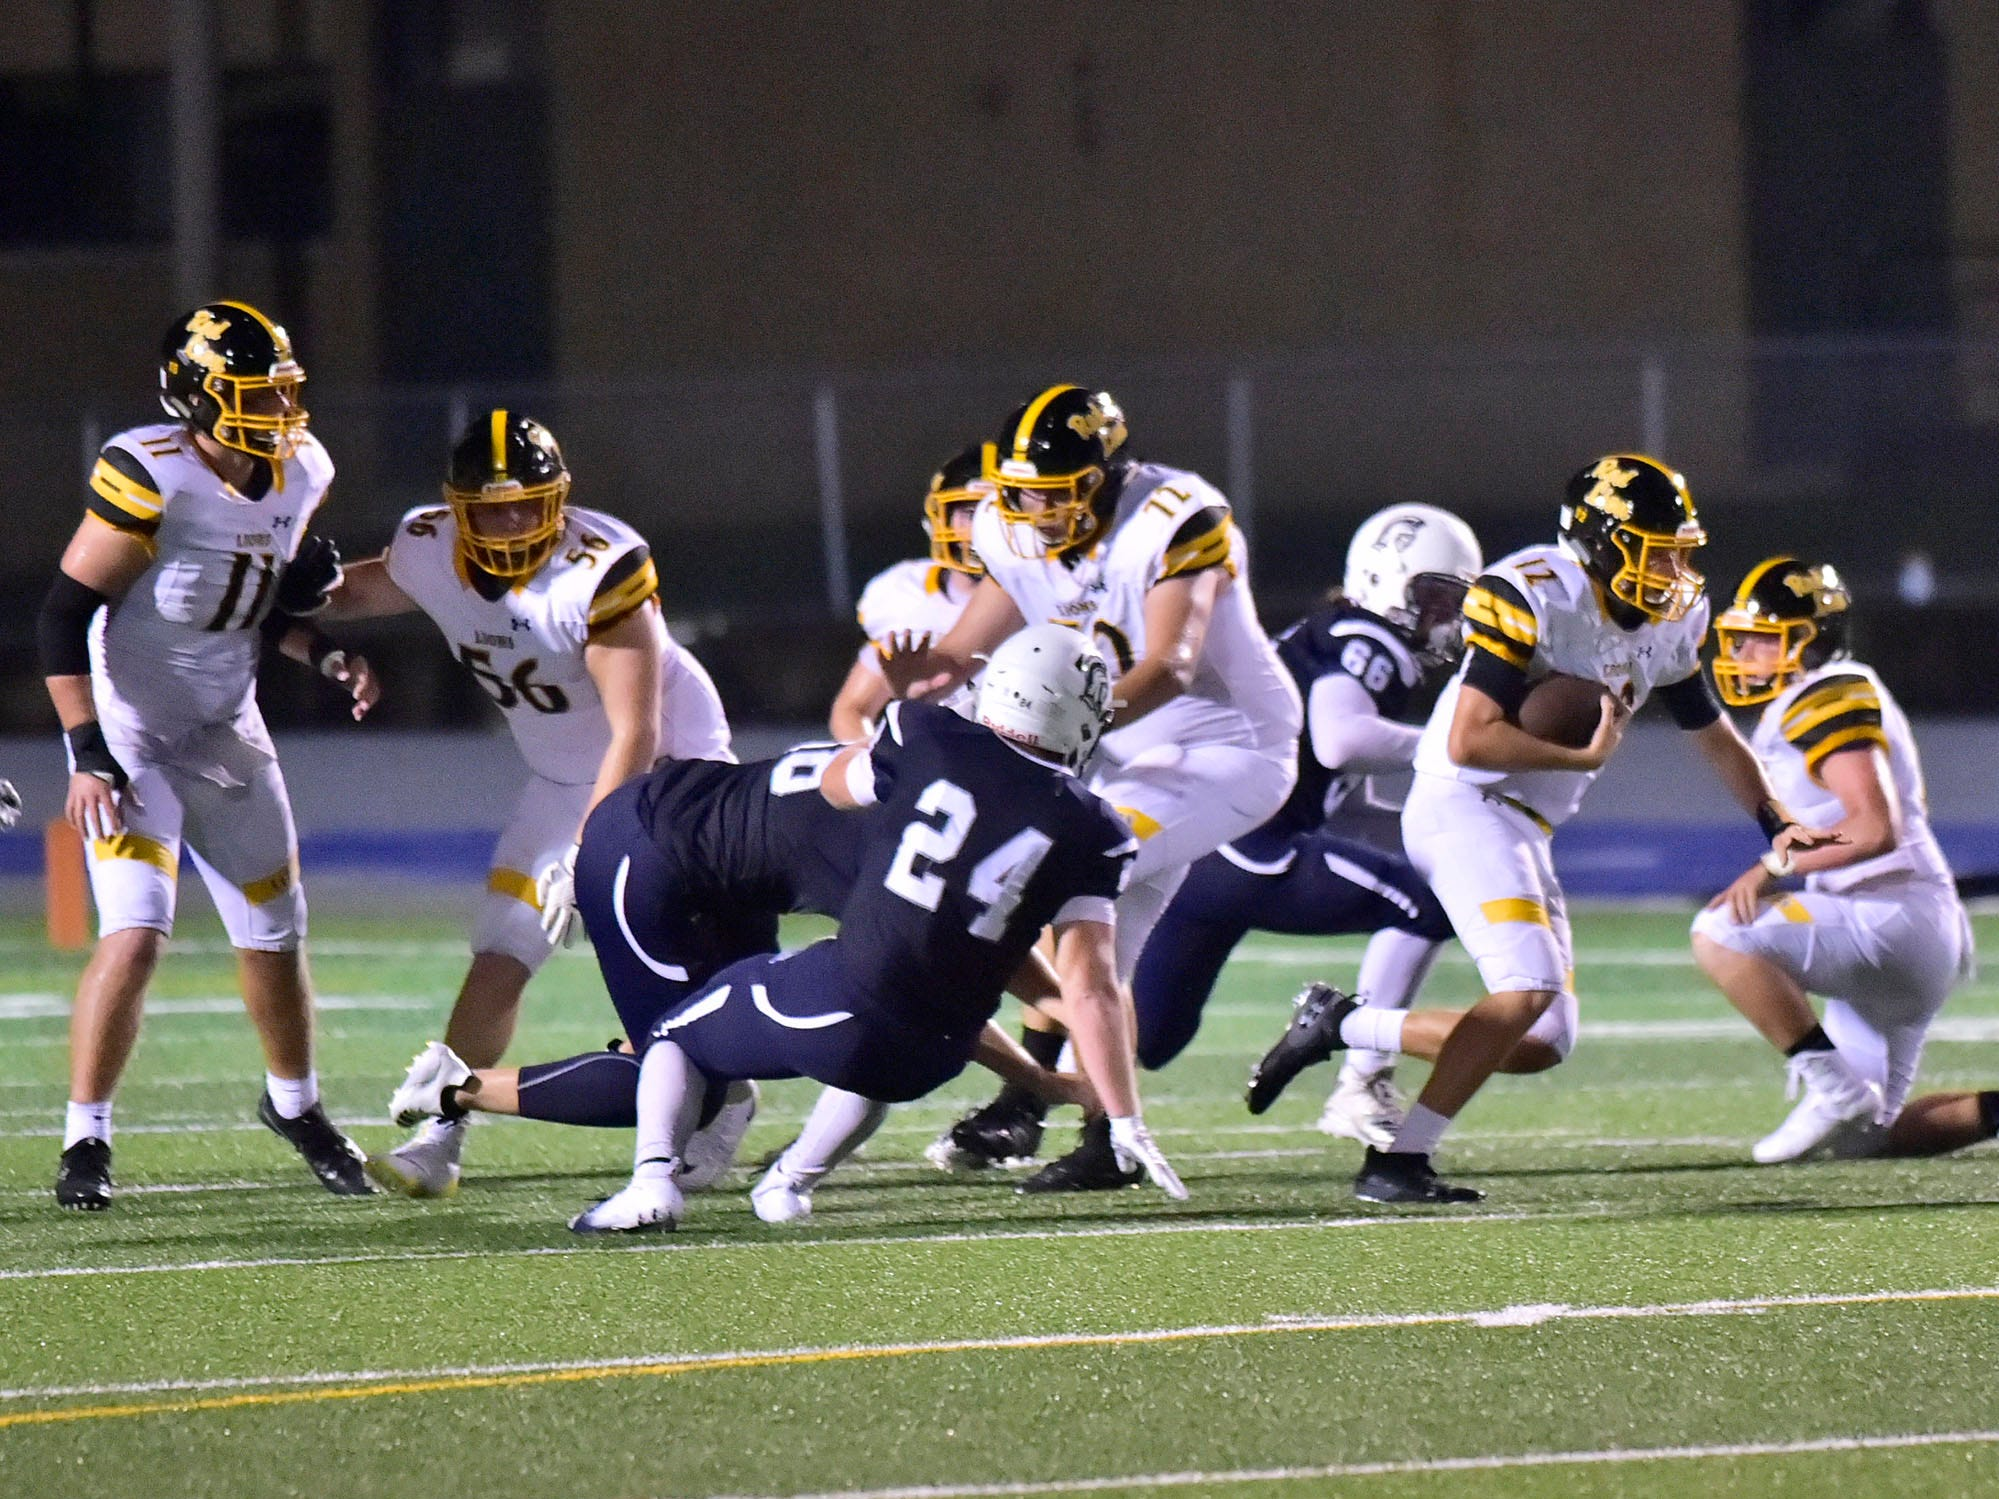 QB Zach Mentzer (12) is on the run for Red Lion. Chambersburg defeated Red Lion 28-19 in PIAA football on Friday, Sept. 7, 2018.